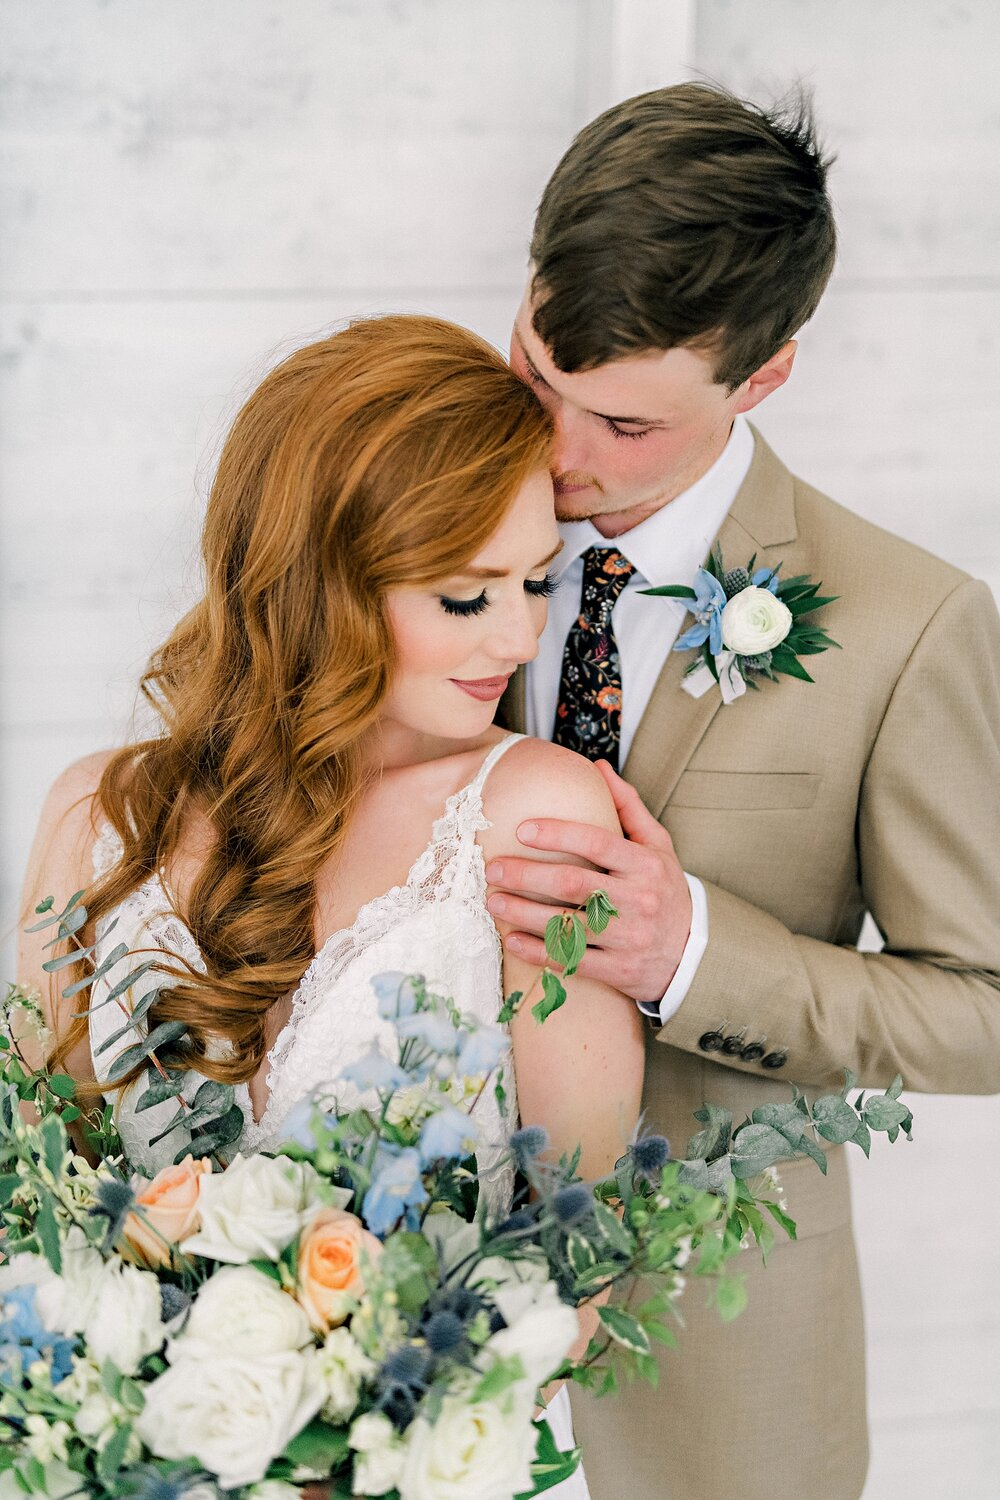 Halifax-Wedding-Photographer-summer-romantic-farm_16.jpg